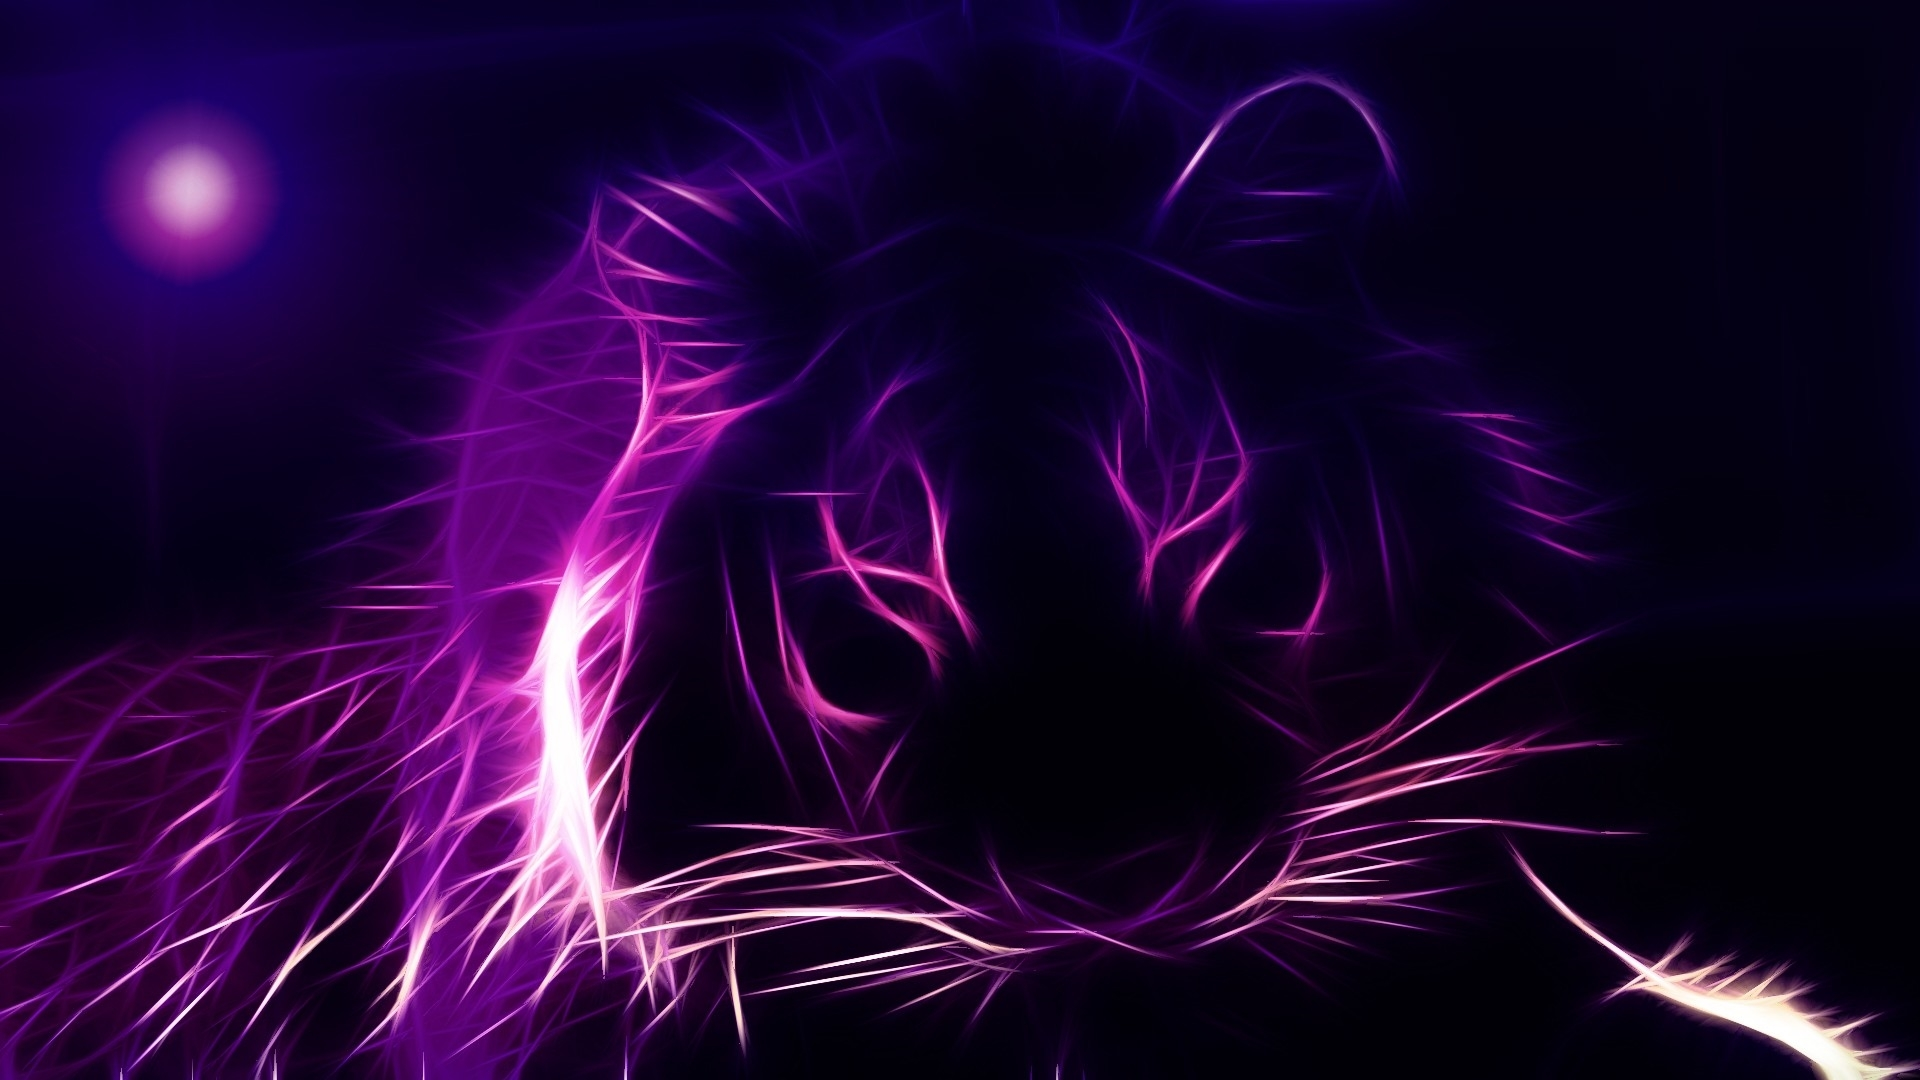 purple abstract hd pics